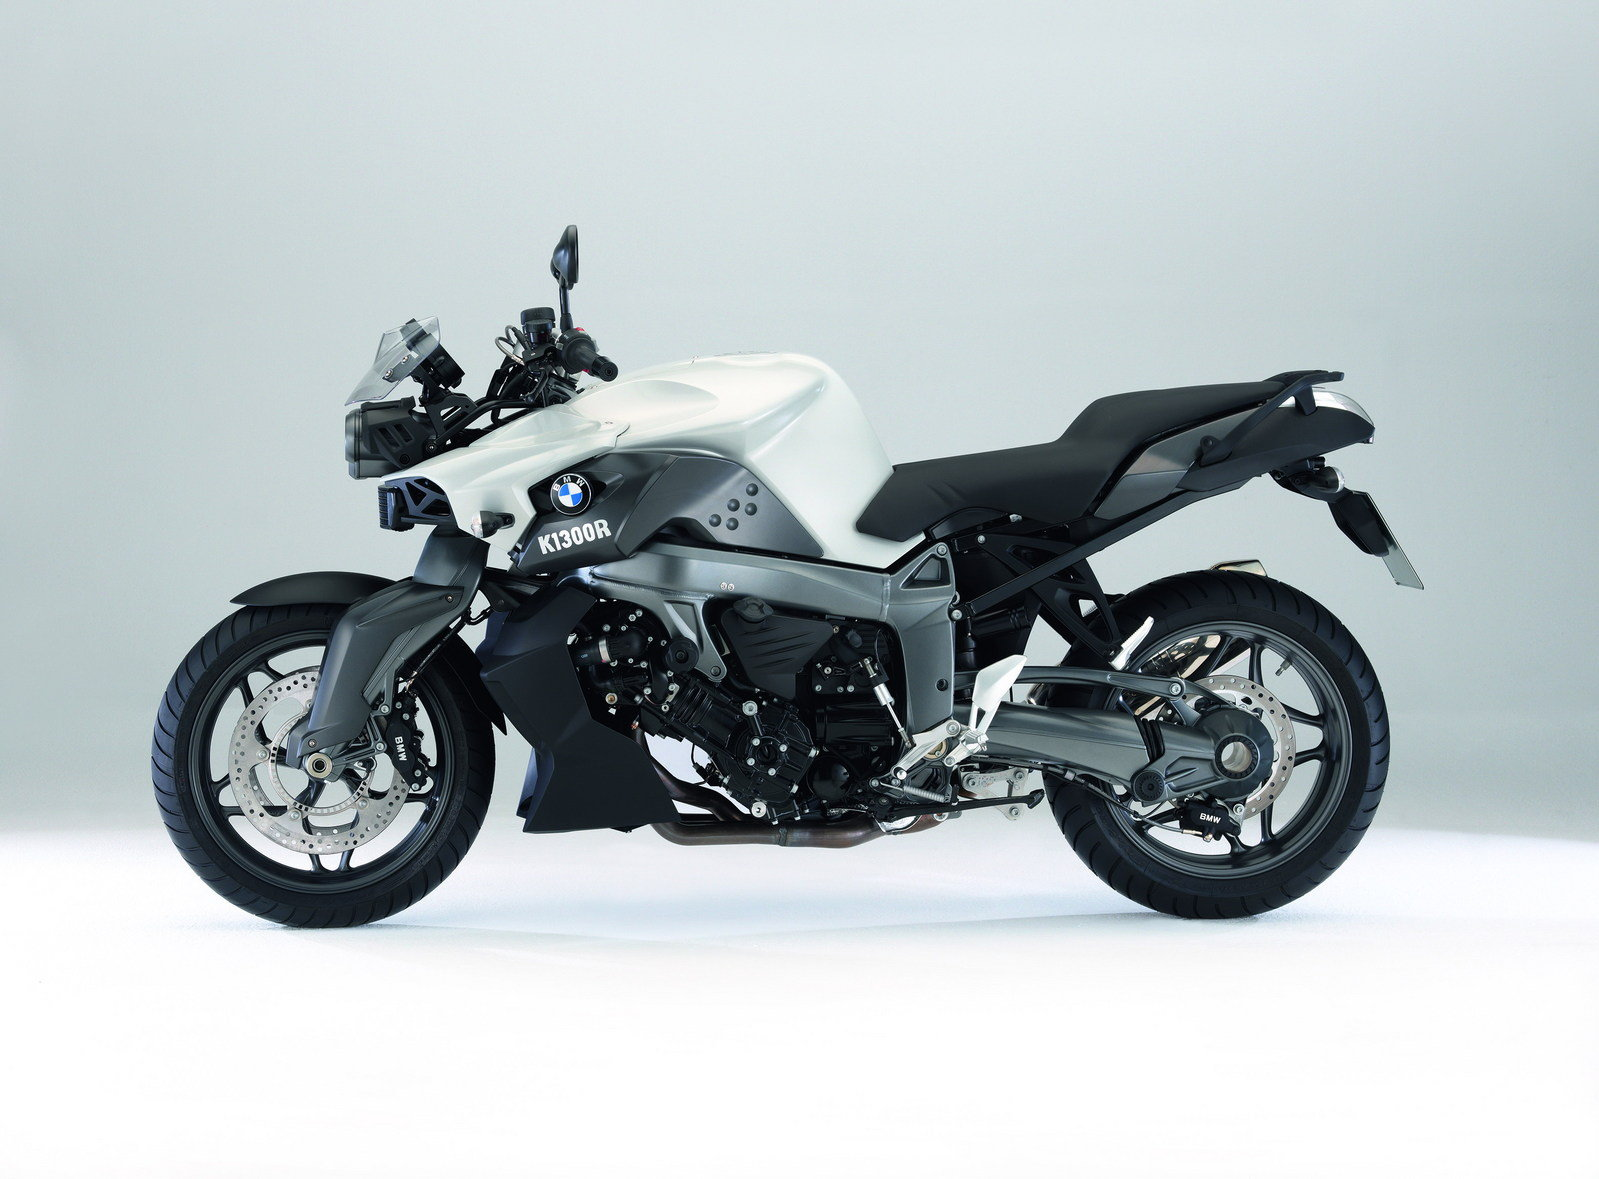 2009 bmw k 1300 r picture 302868 motorcycle review. Black Bedroom Furniture Sets. Home Design Ideas